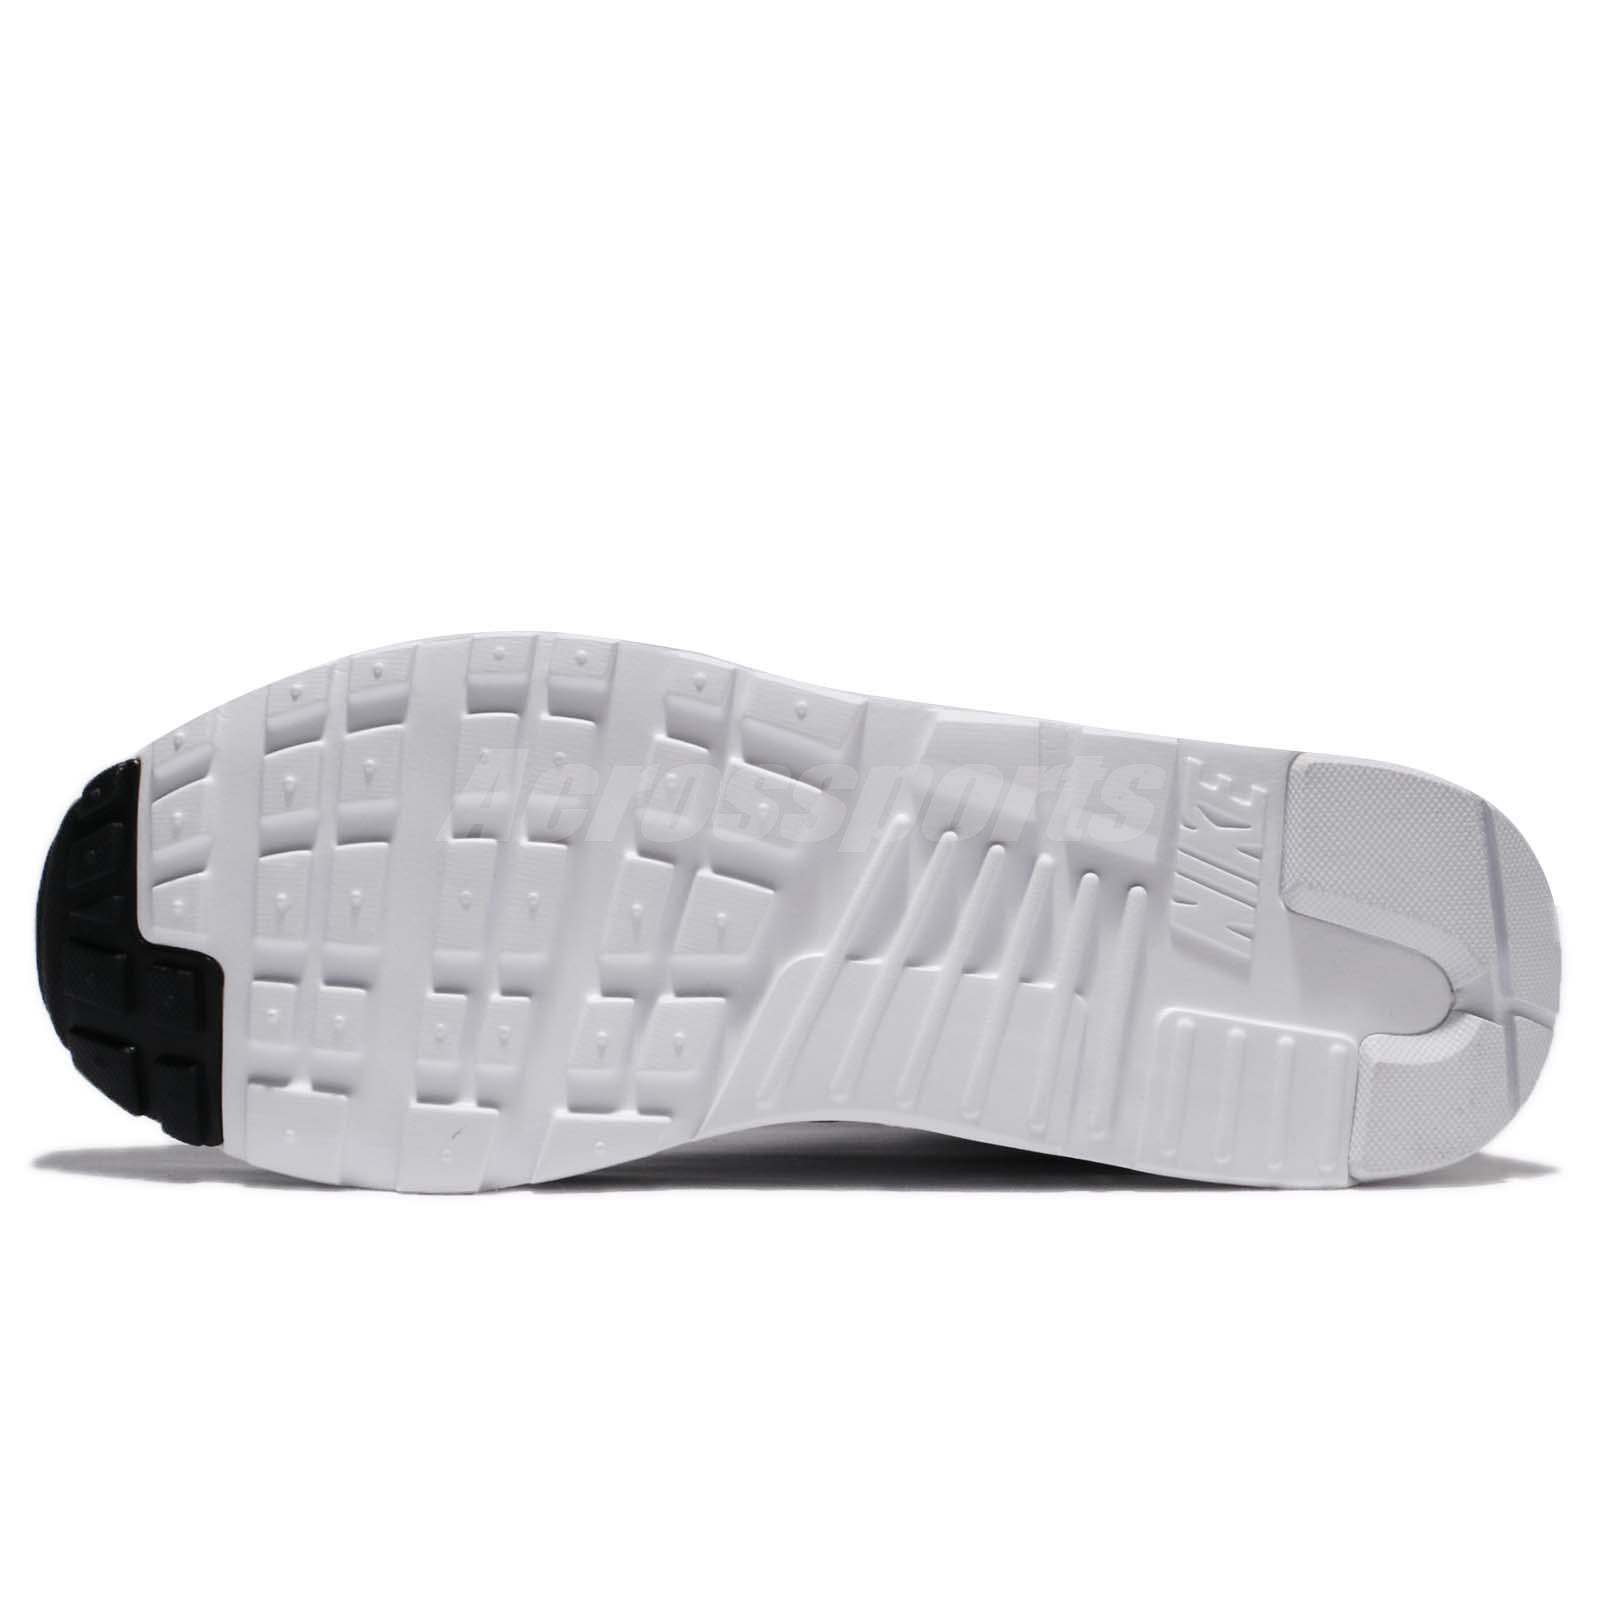 buy online 8df2b b4e5c Nike Air Max Vision Black White Men Running Shoes Sneakers Trainers ...